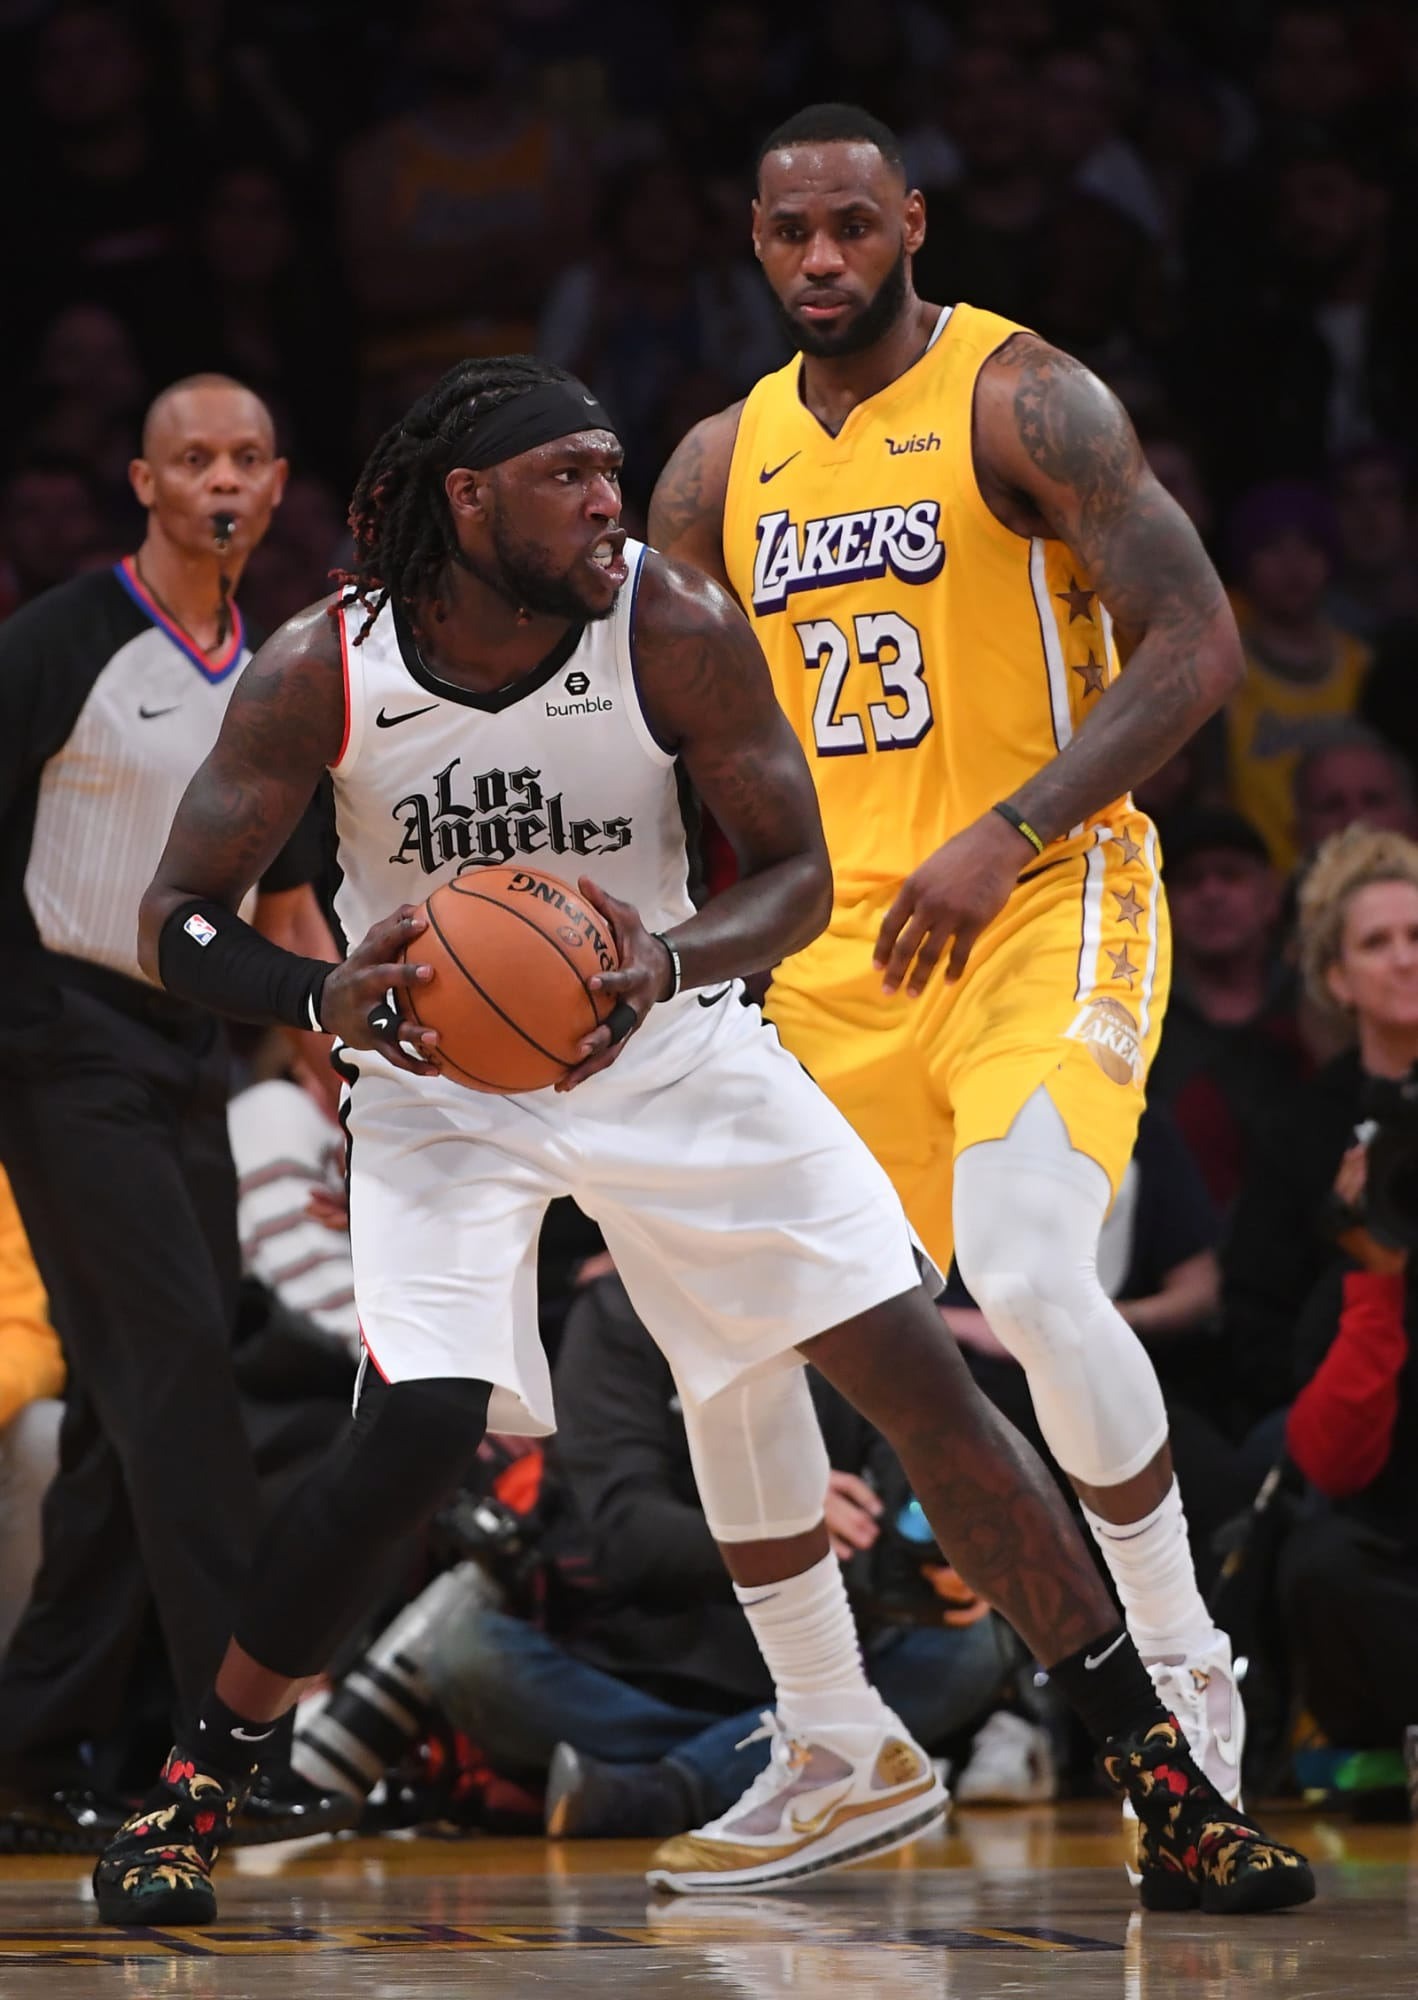 This version of the Los Angeles Lakers is the next superteam